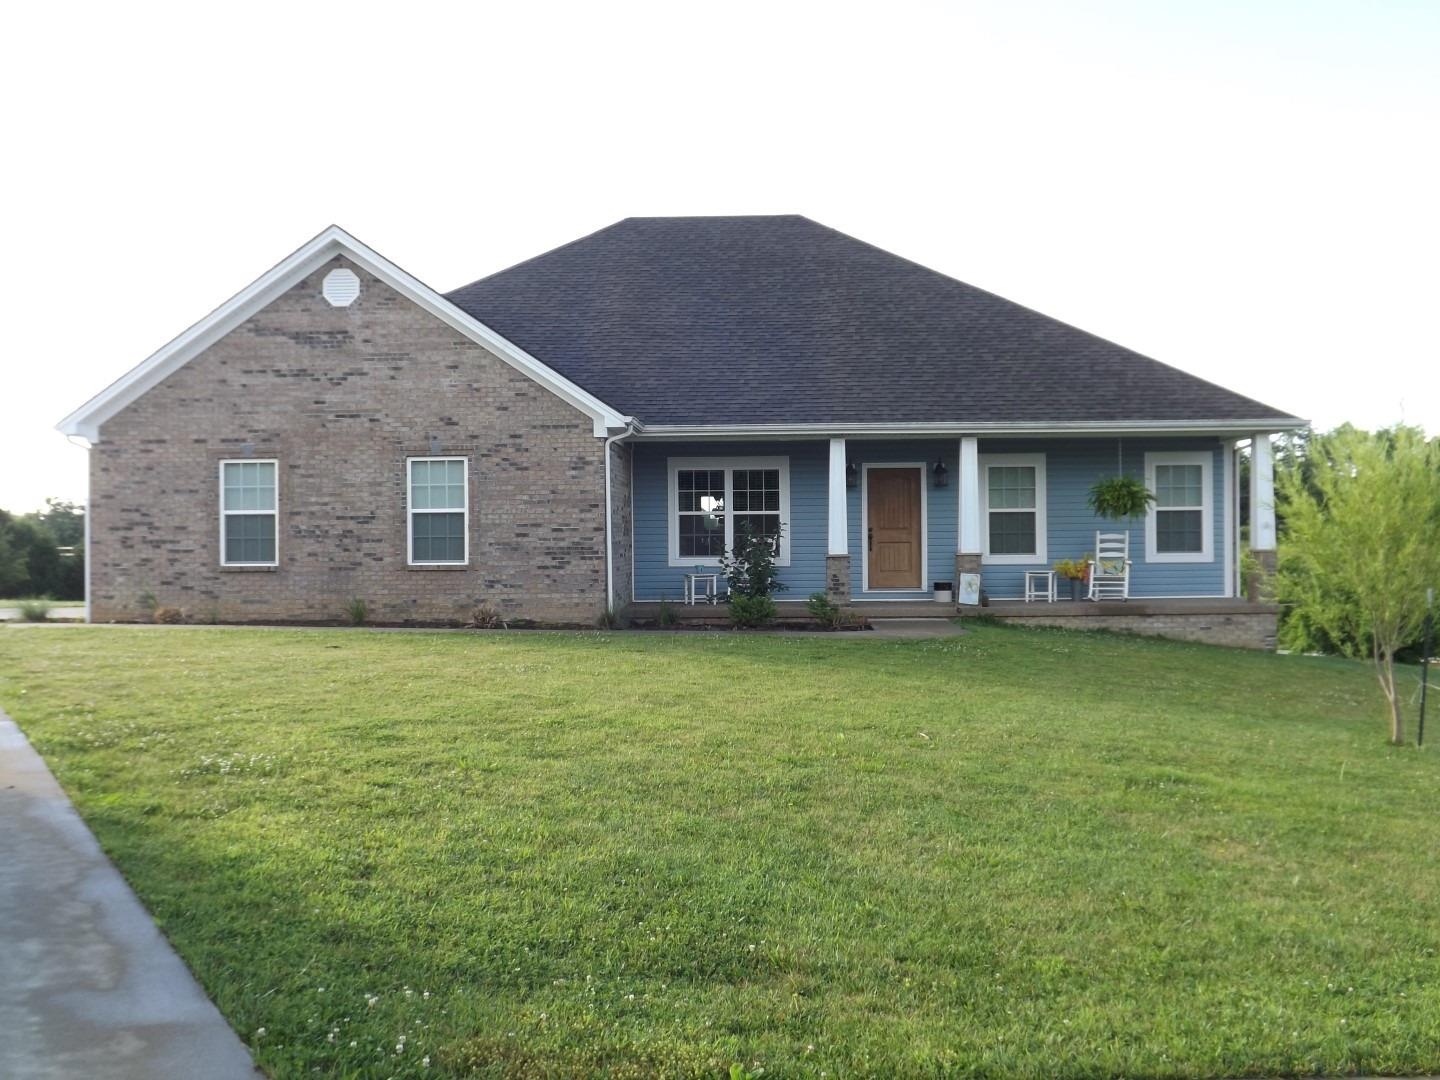 227 Tazwell Dr, Richmond, KY 40475